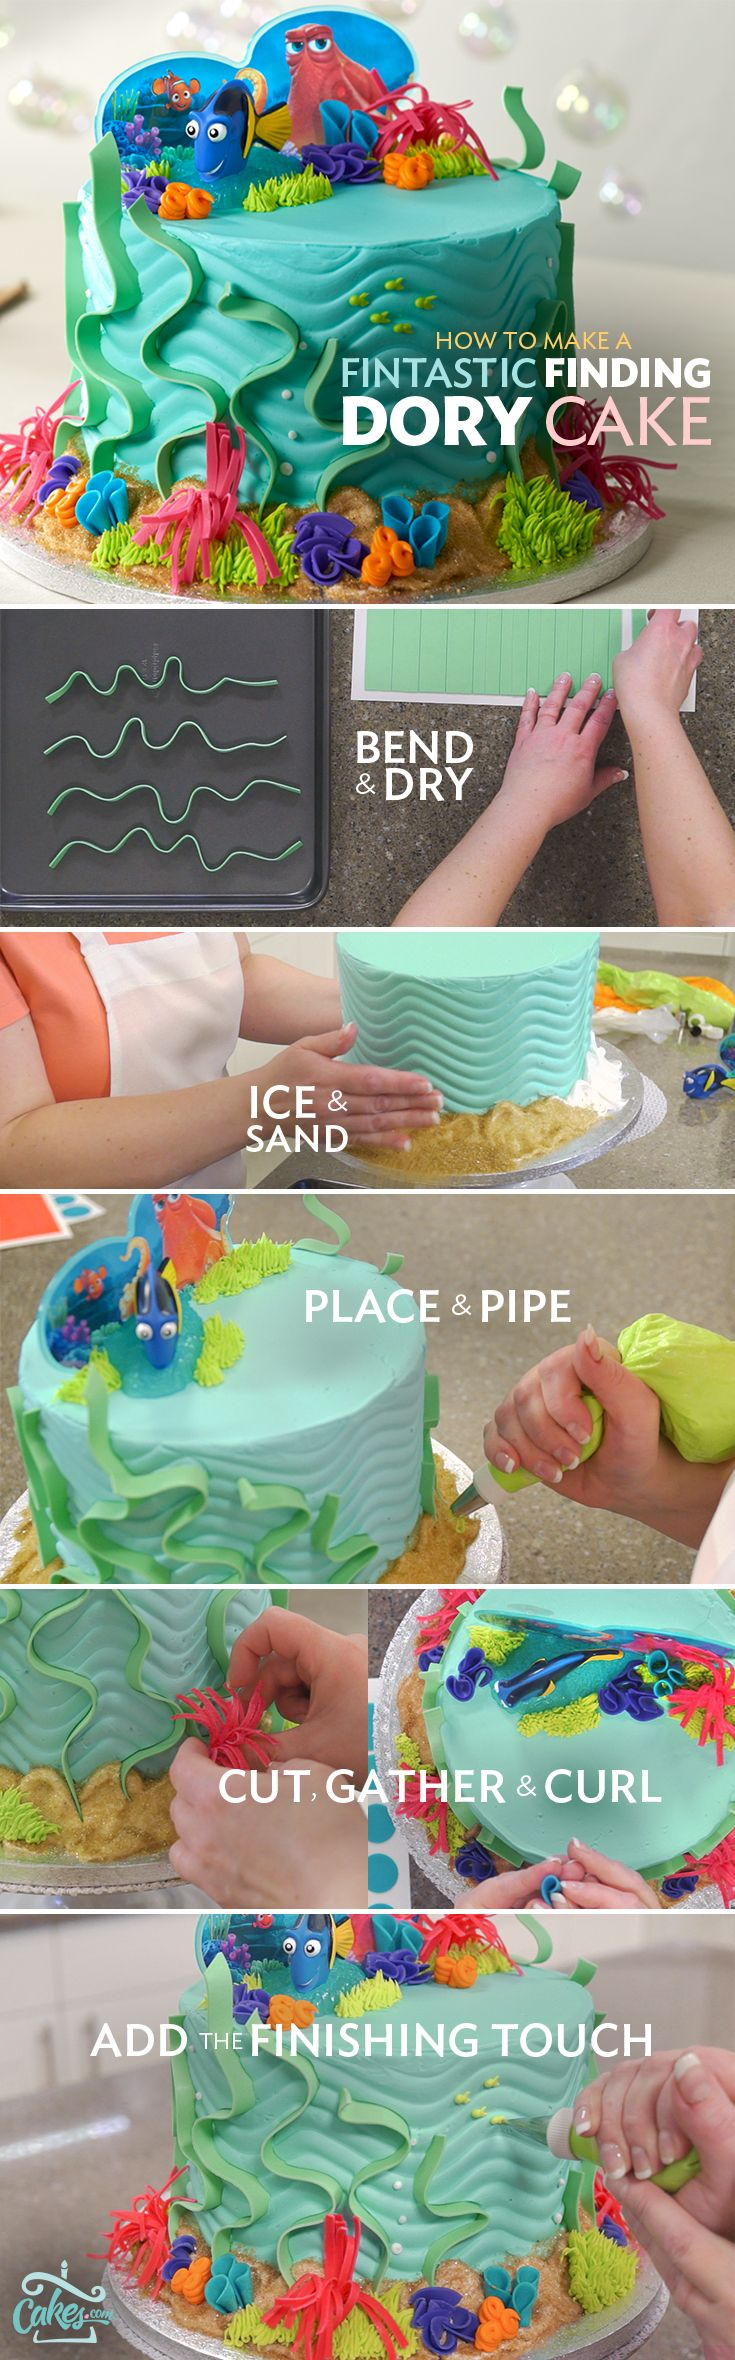 Order a Cake from a Local Bakery disney Pixar Coral reefs and Seaweed